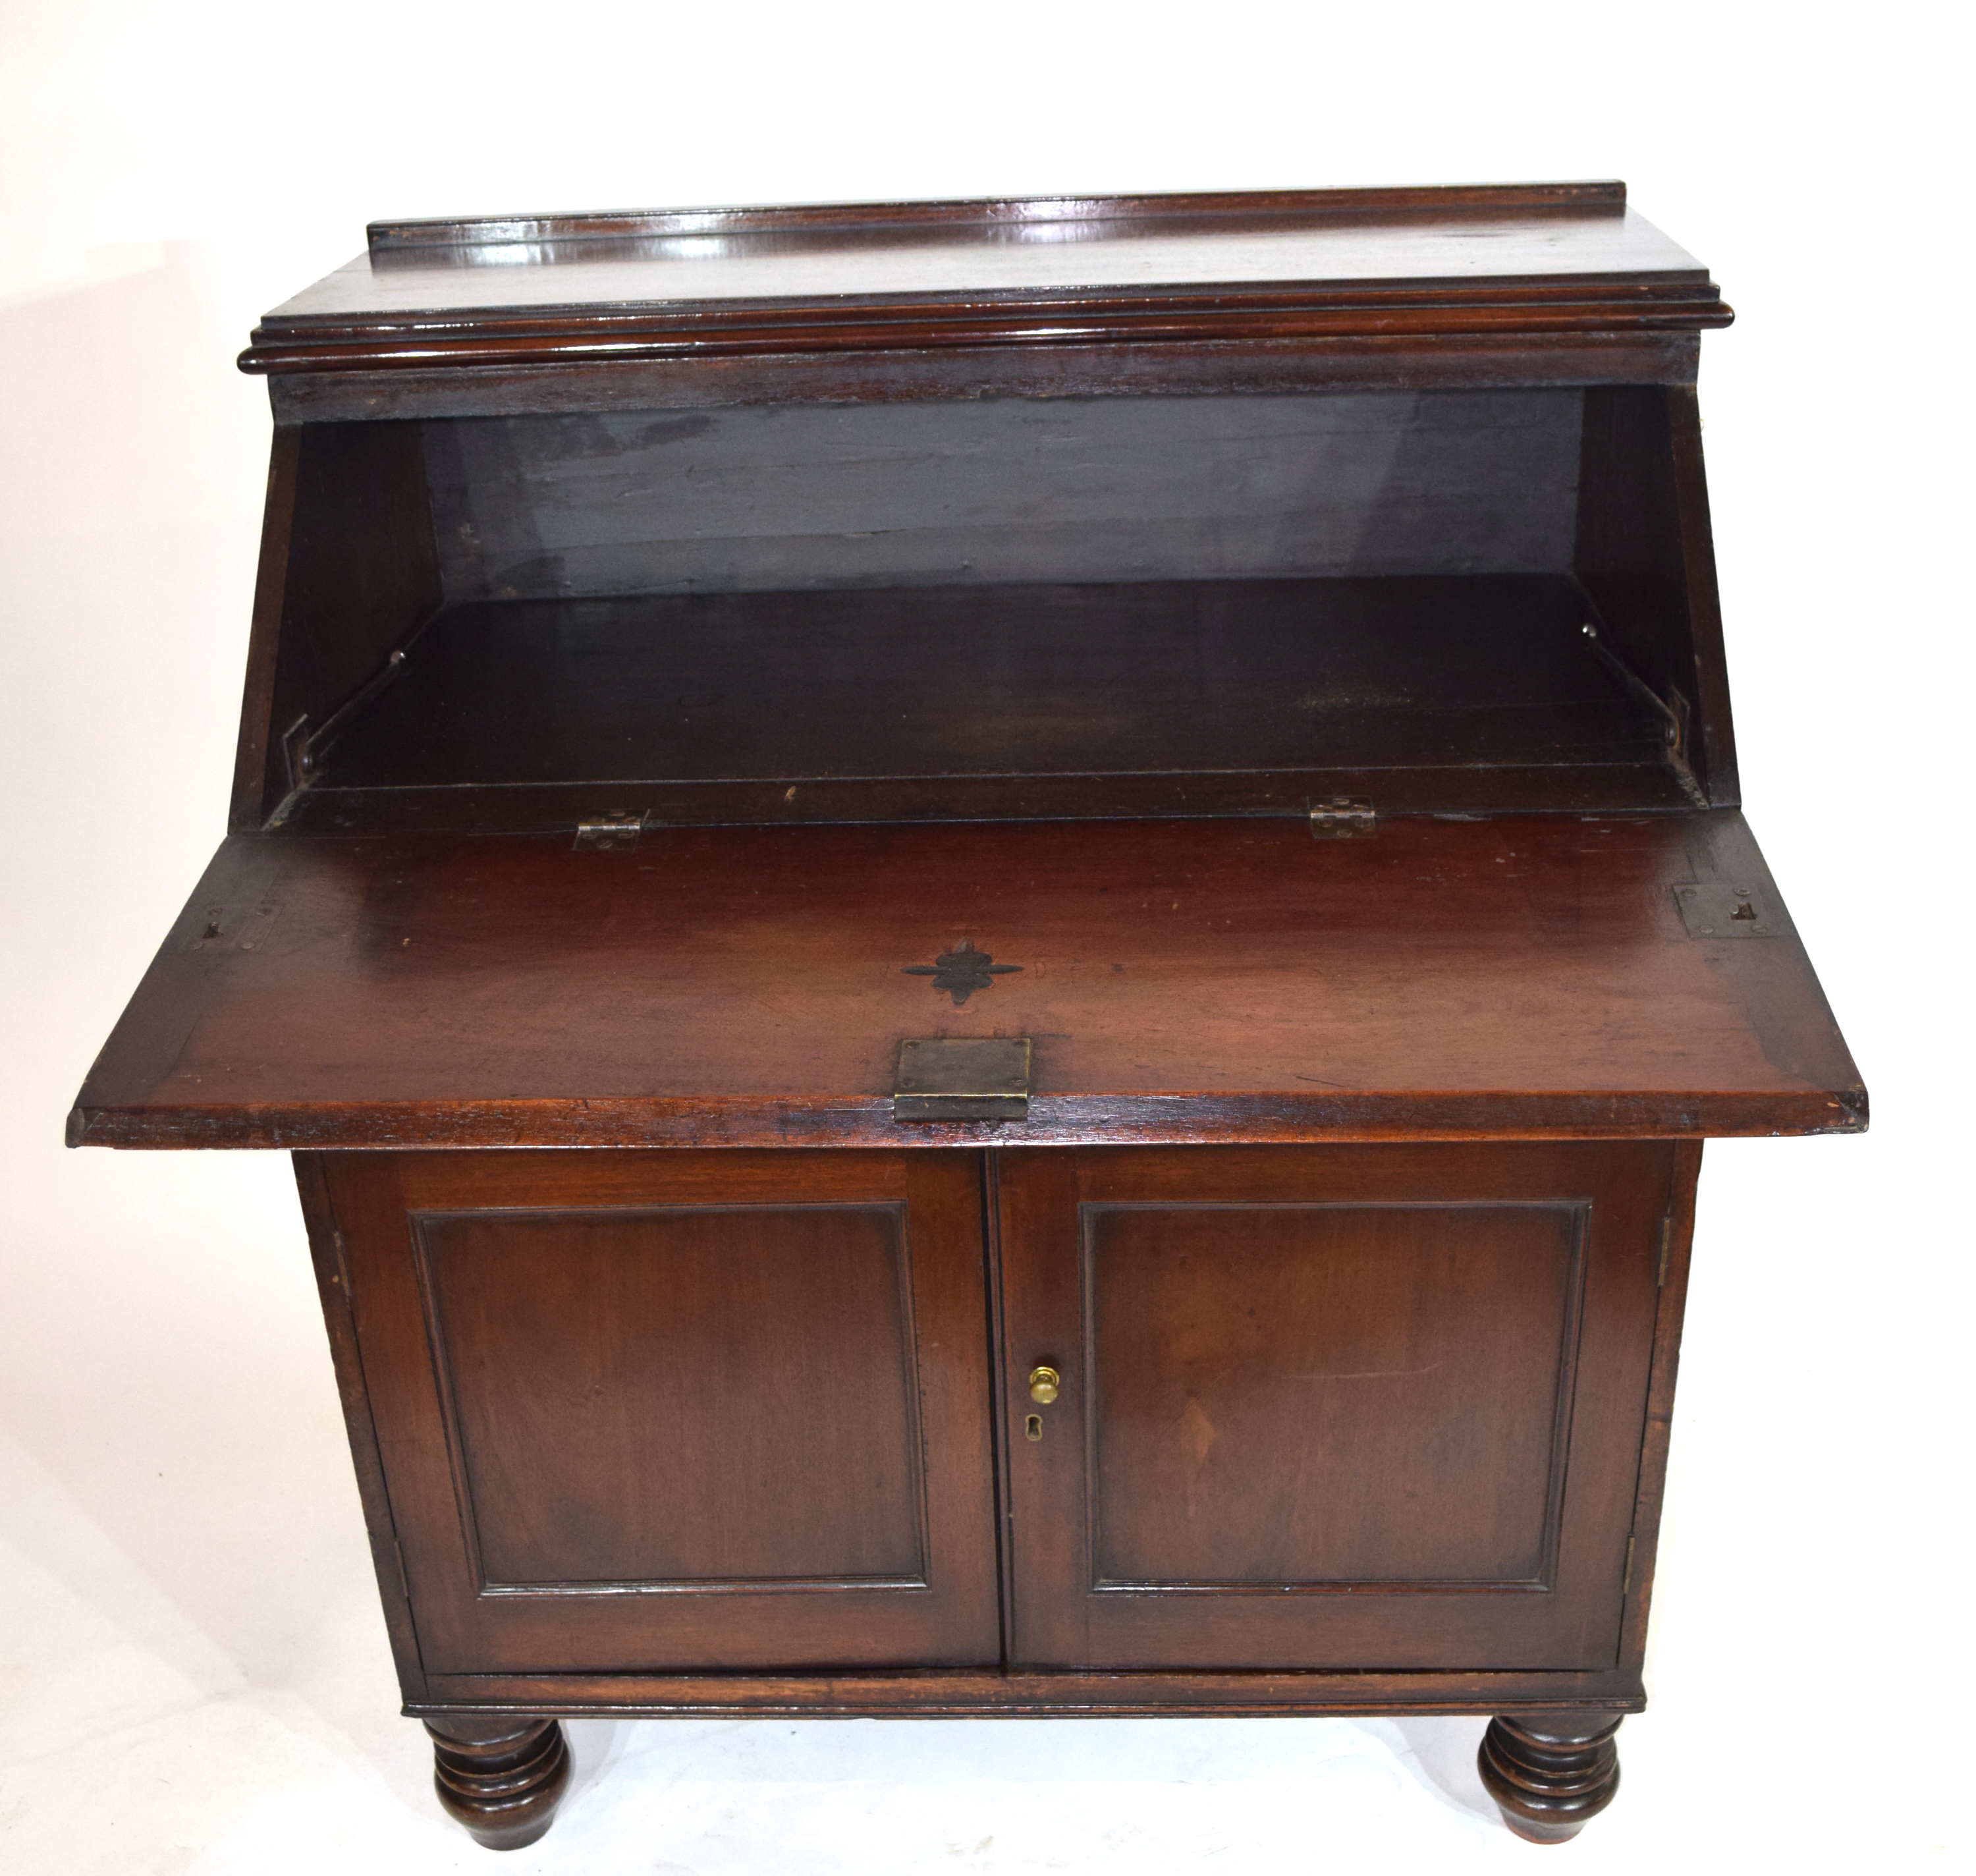 Late 19th/Early 20th century mahogany bureau with full front decorated with carved floral detail - Image 2 of 5